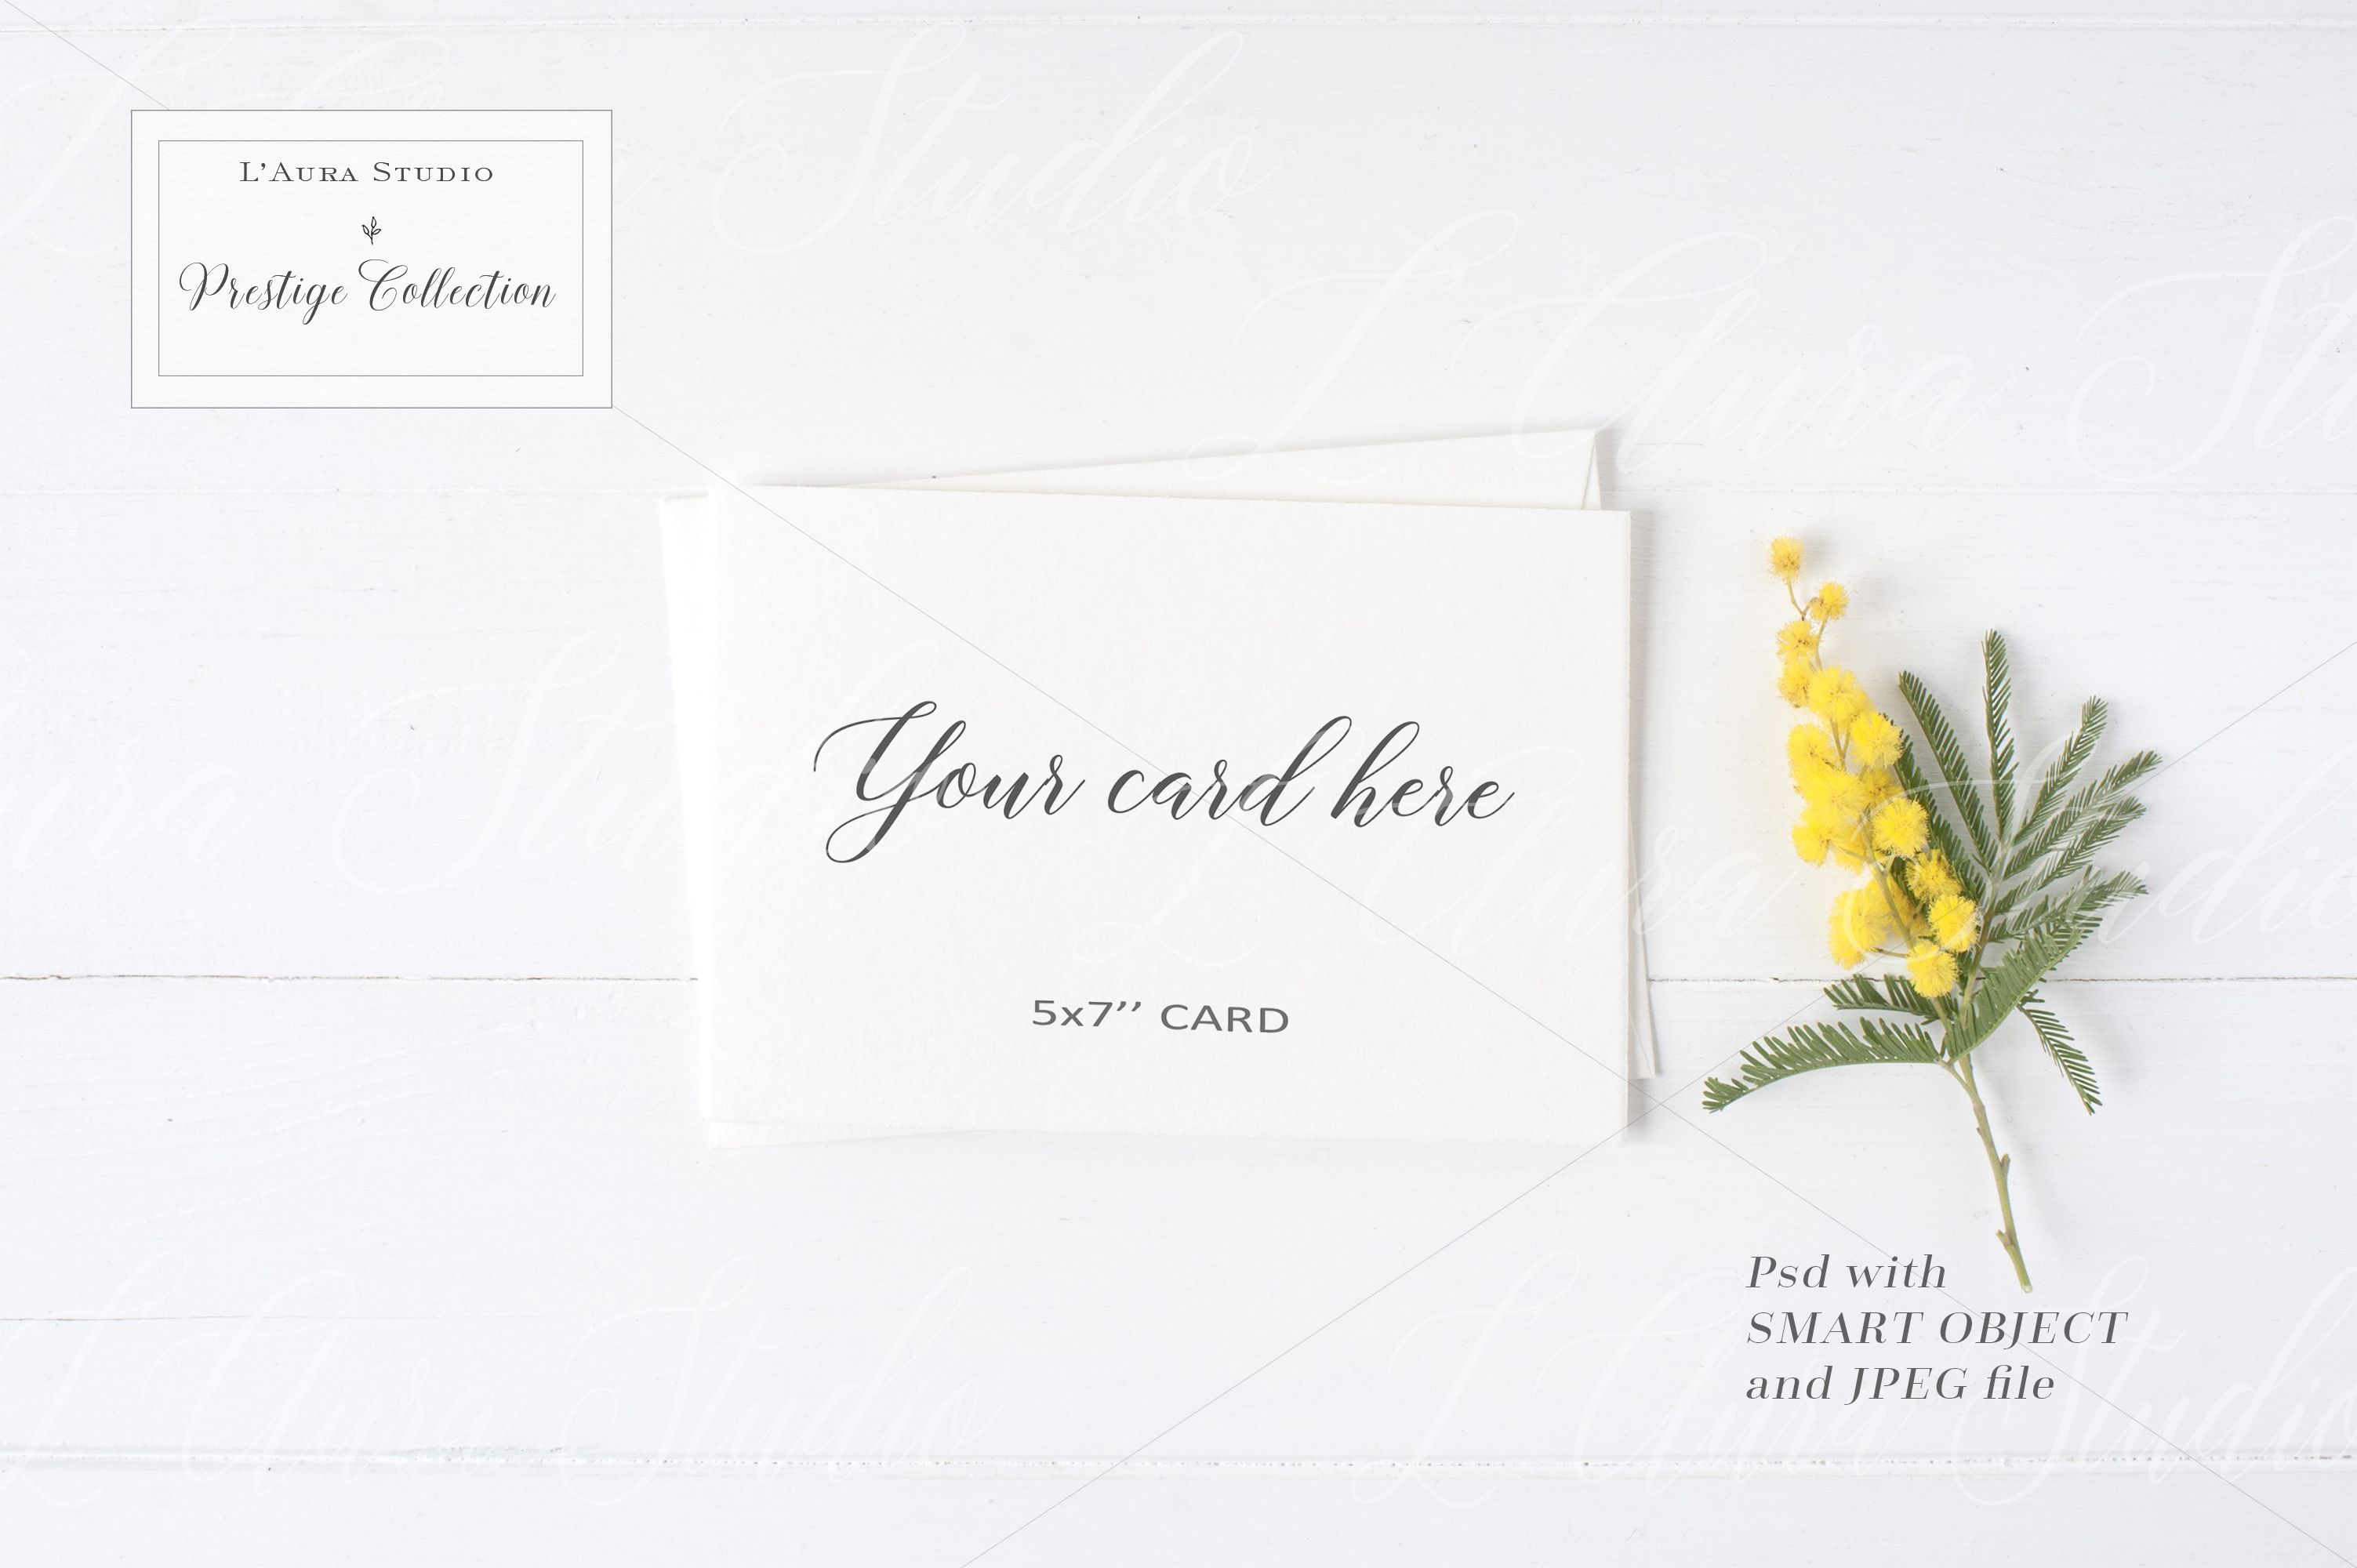 Floral Stationery Mockup - crd230 example image 1